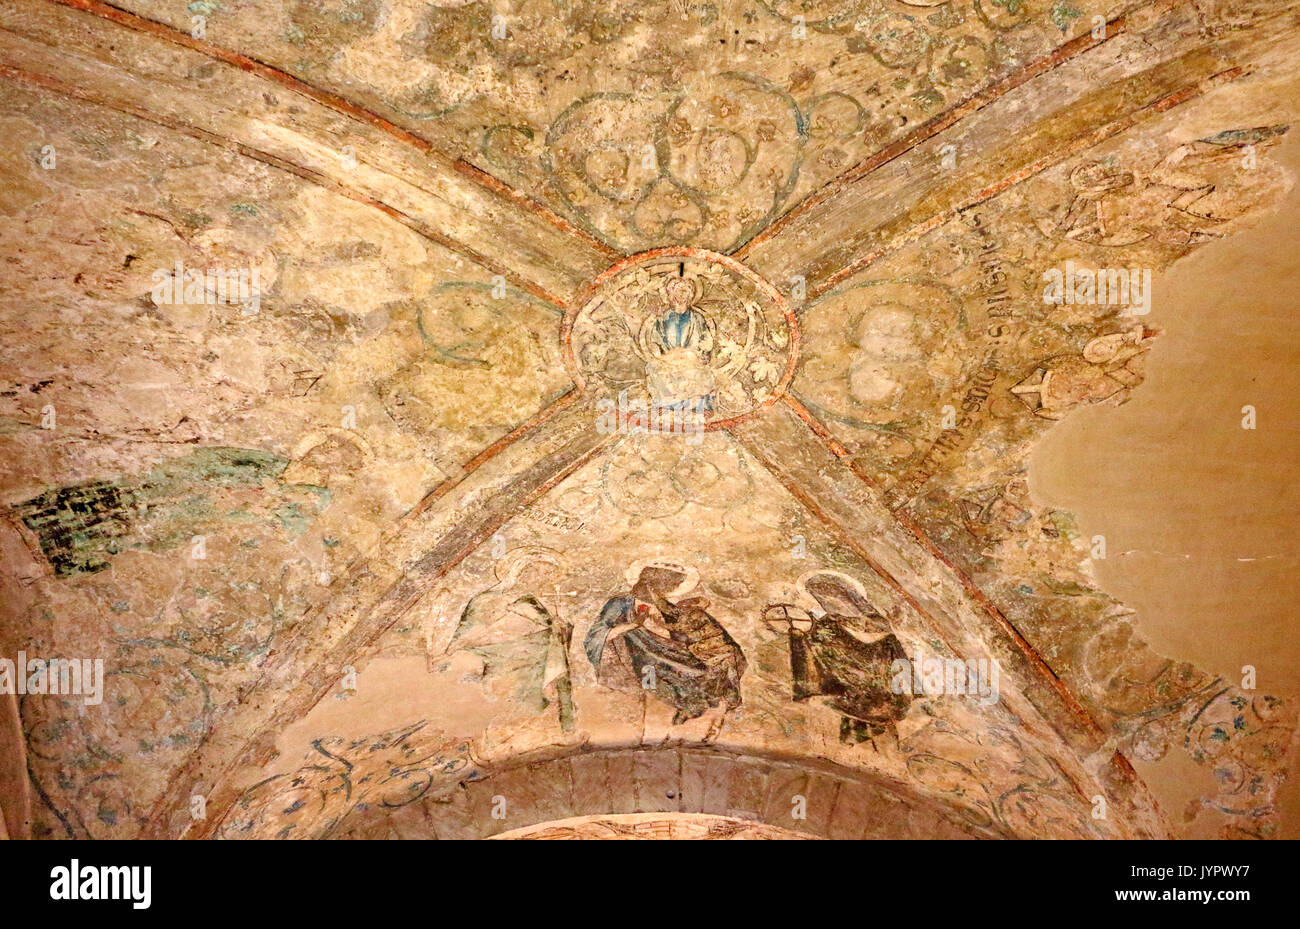 A view of medieval painting on the ceiling of the Treasury in the Anglican Cathedral in the City of Norwich, Norfolk, England, United Kingdom. - Stock Image